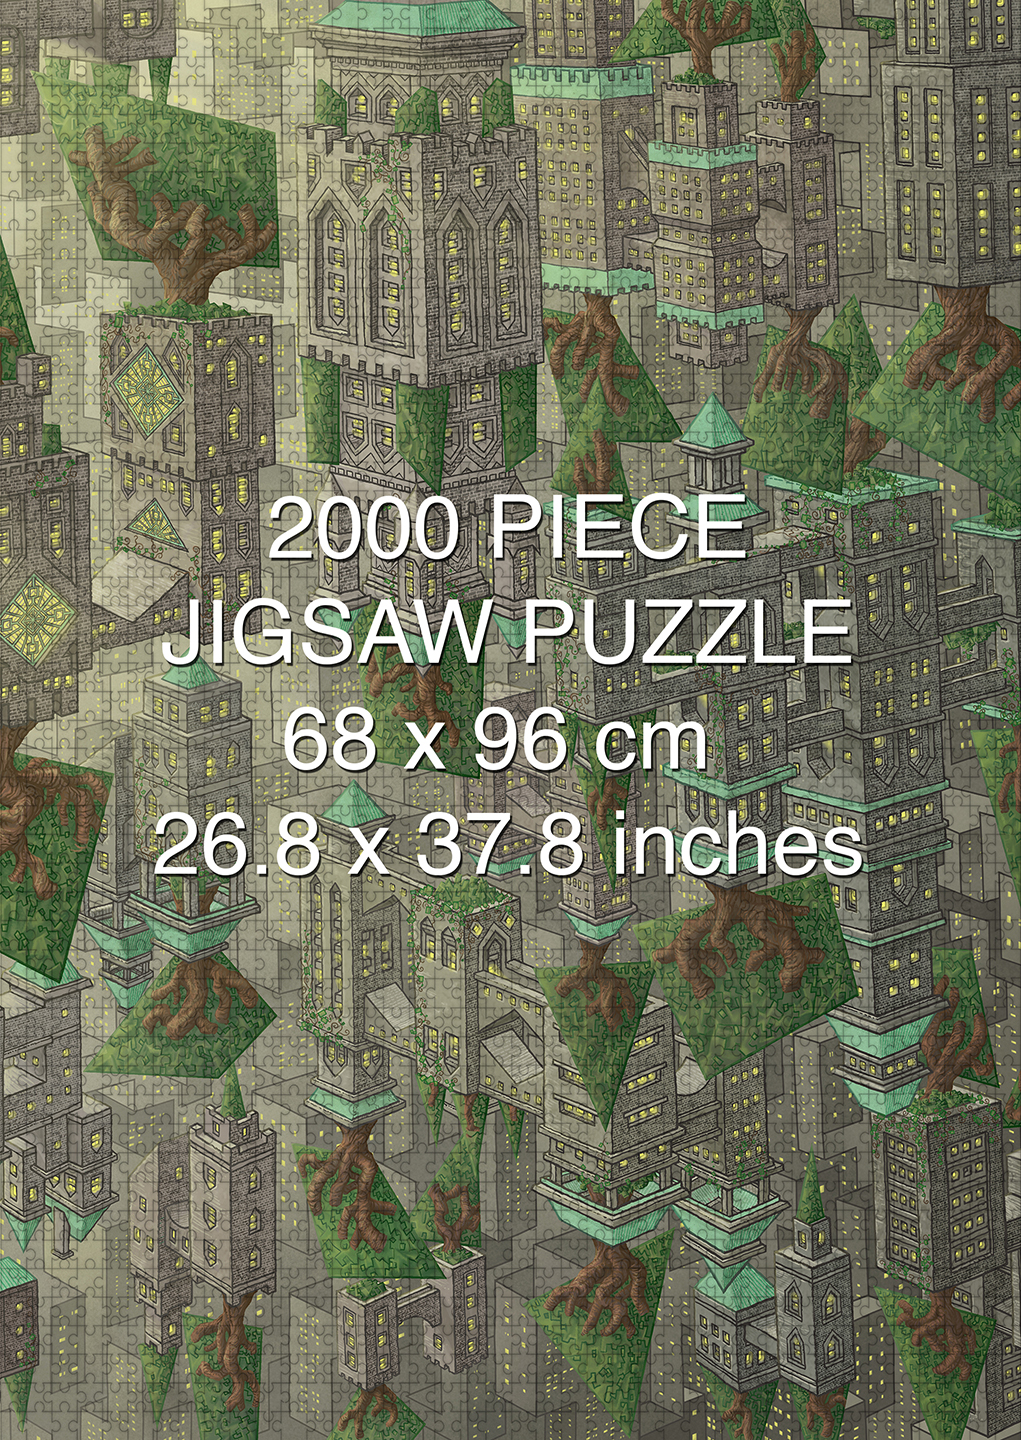 A Delicate Balance: Penrose Heights 2000 piece puzzle by Aaron Wolf and Pandemic Puzzles